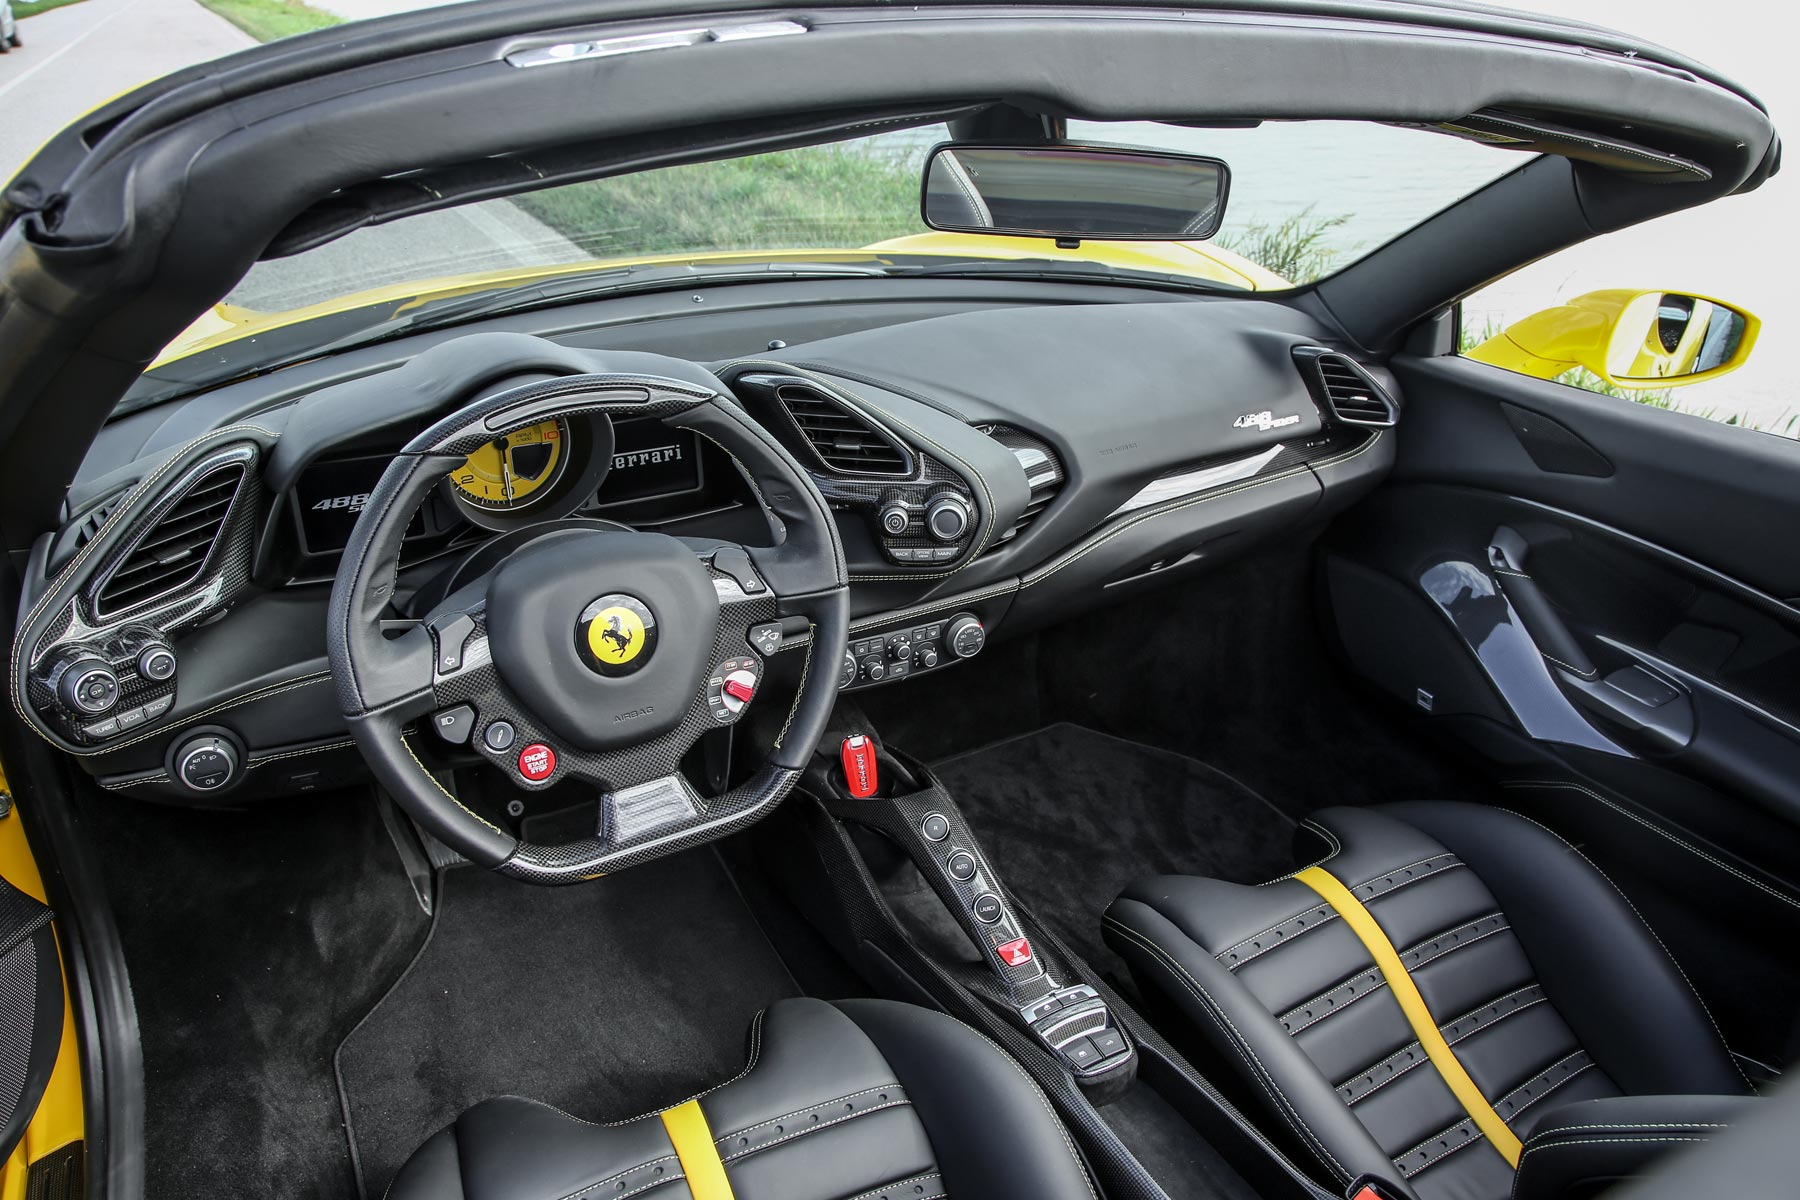 2016 Ferrari 488 Spider: On the inside